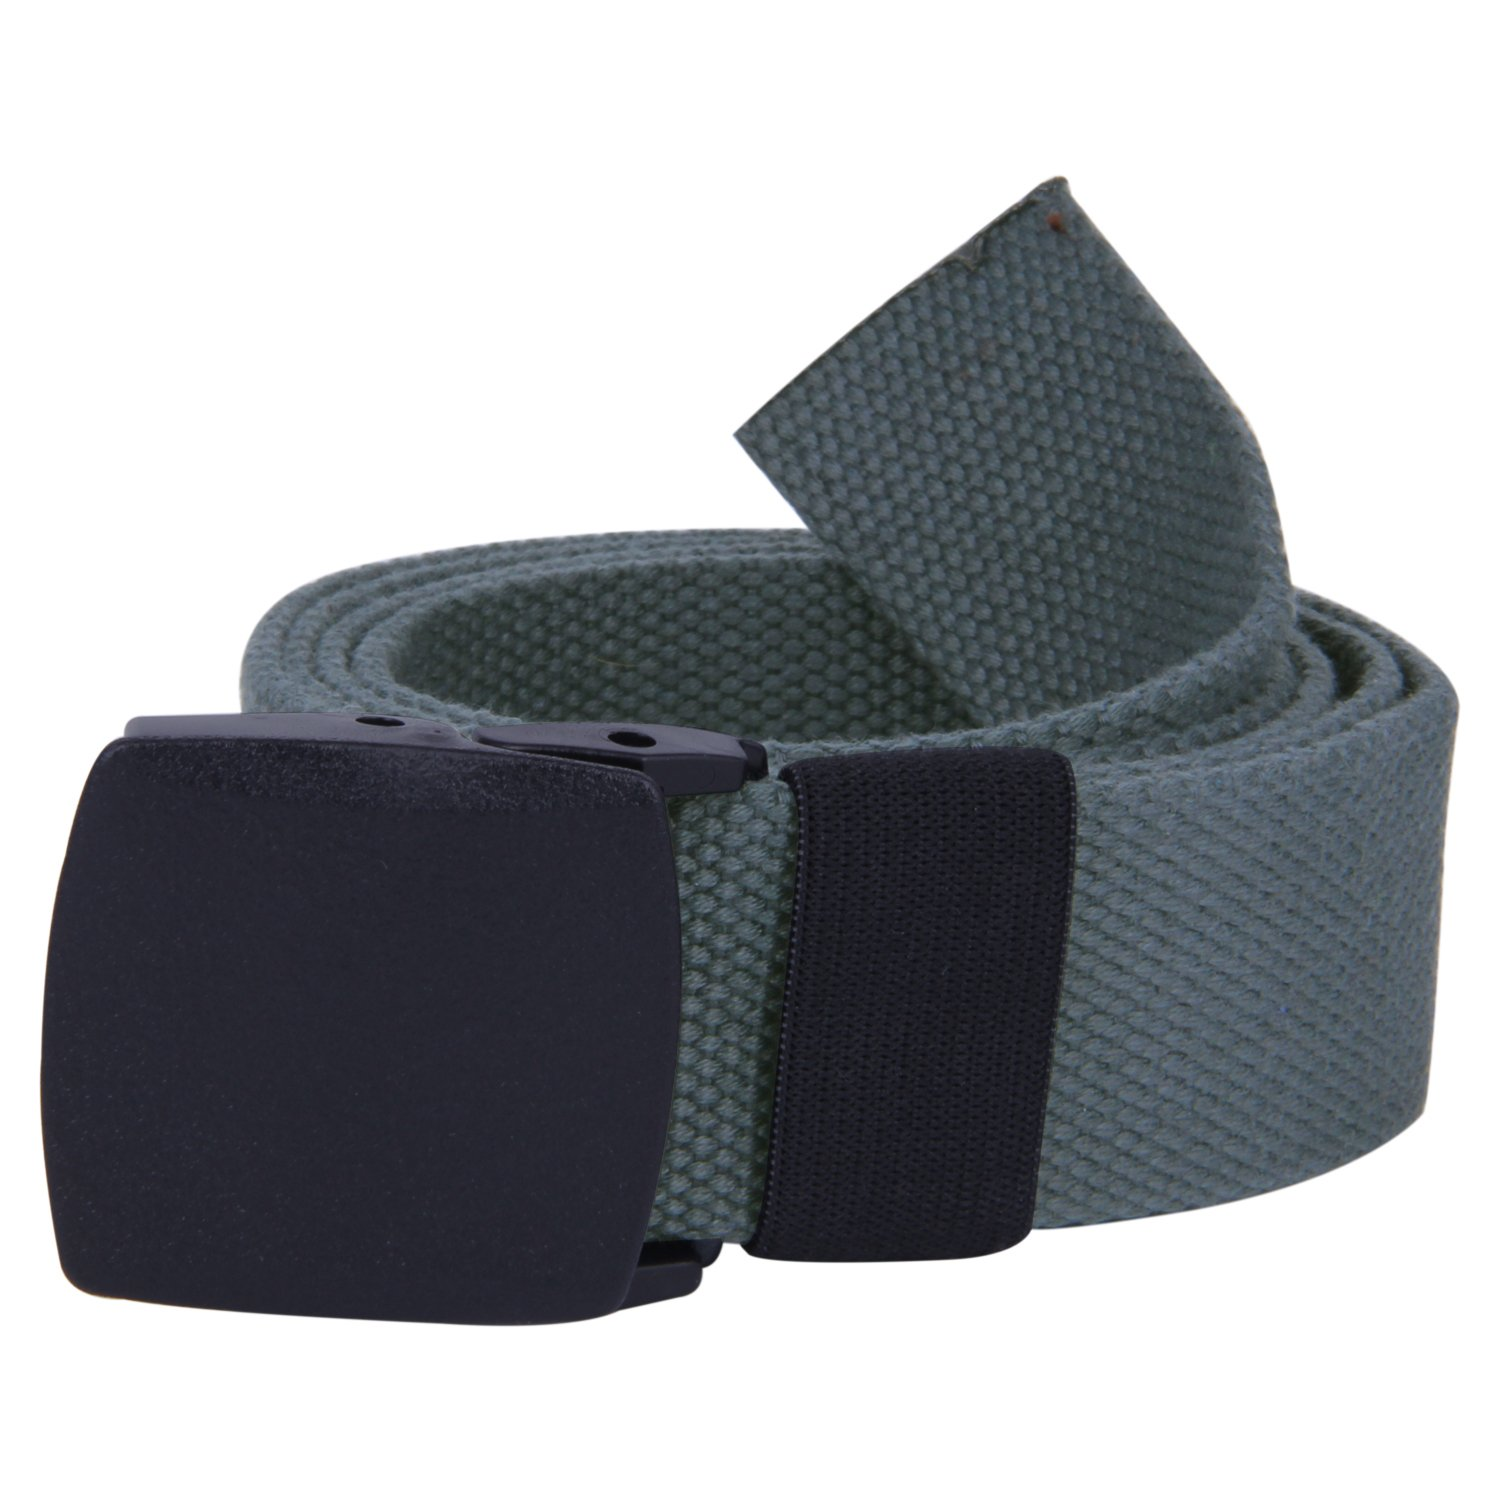 ROFIFY Tactical Belt Military Style Canvas Webbing Riggers Belts with Flip-Top Black Plastic Buckle 50 Long